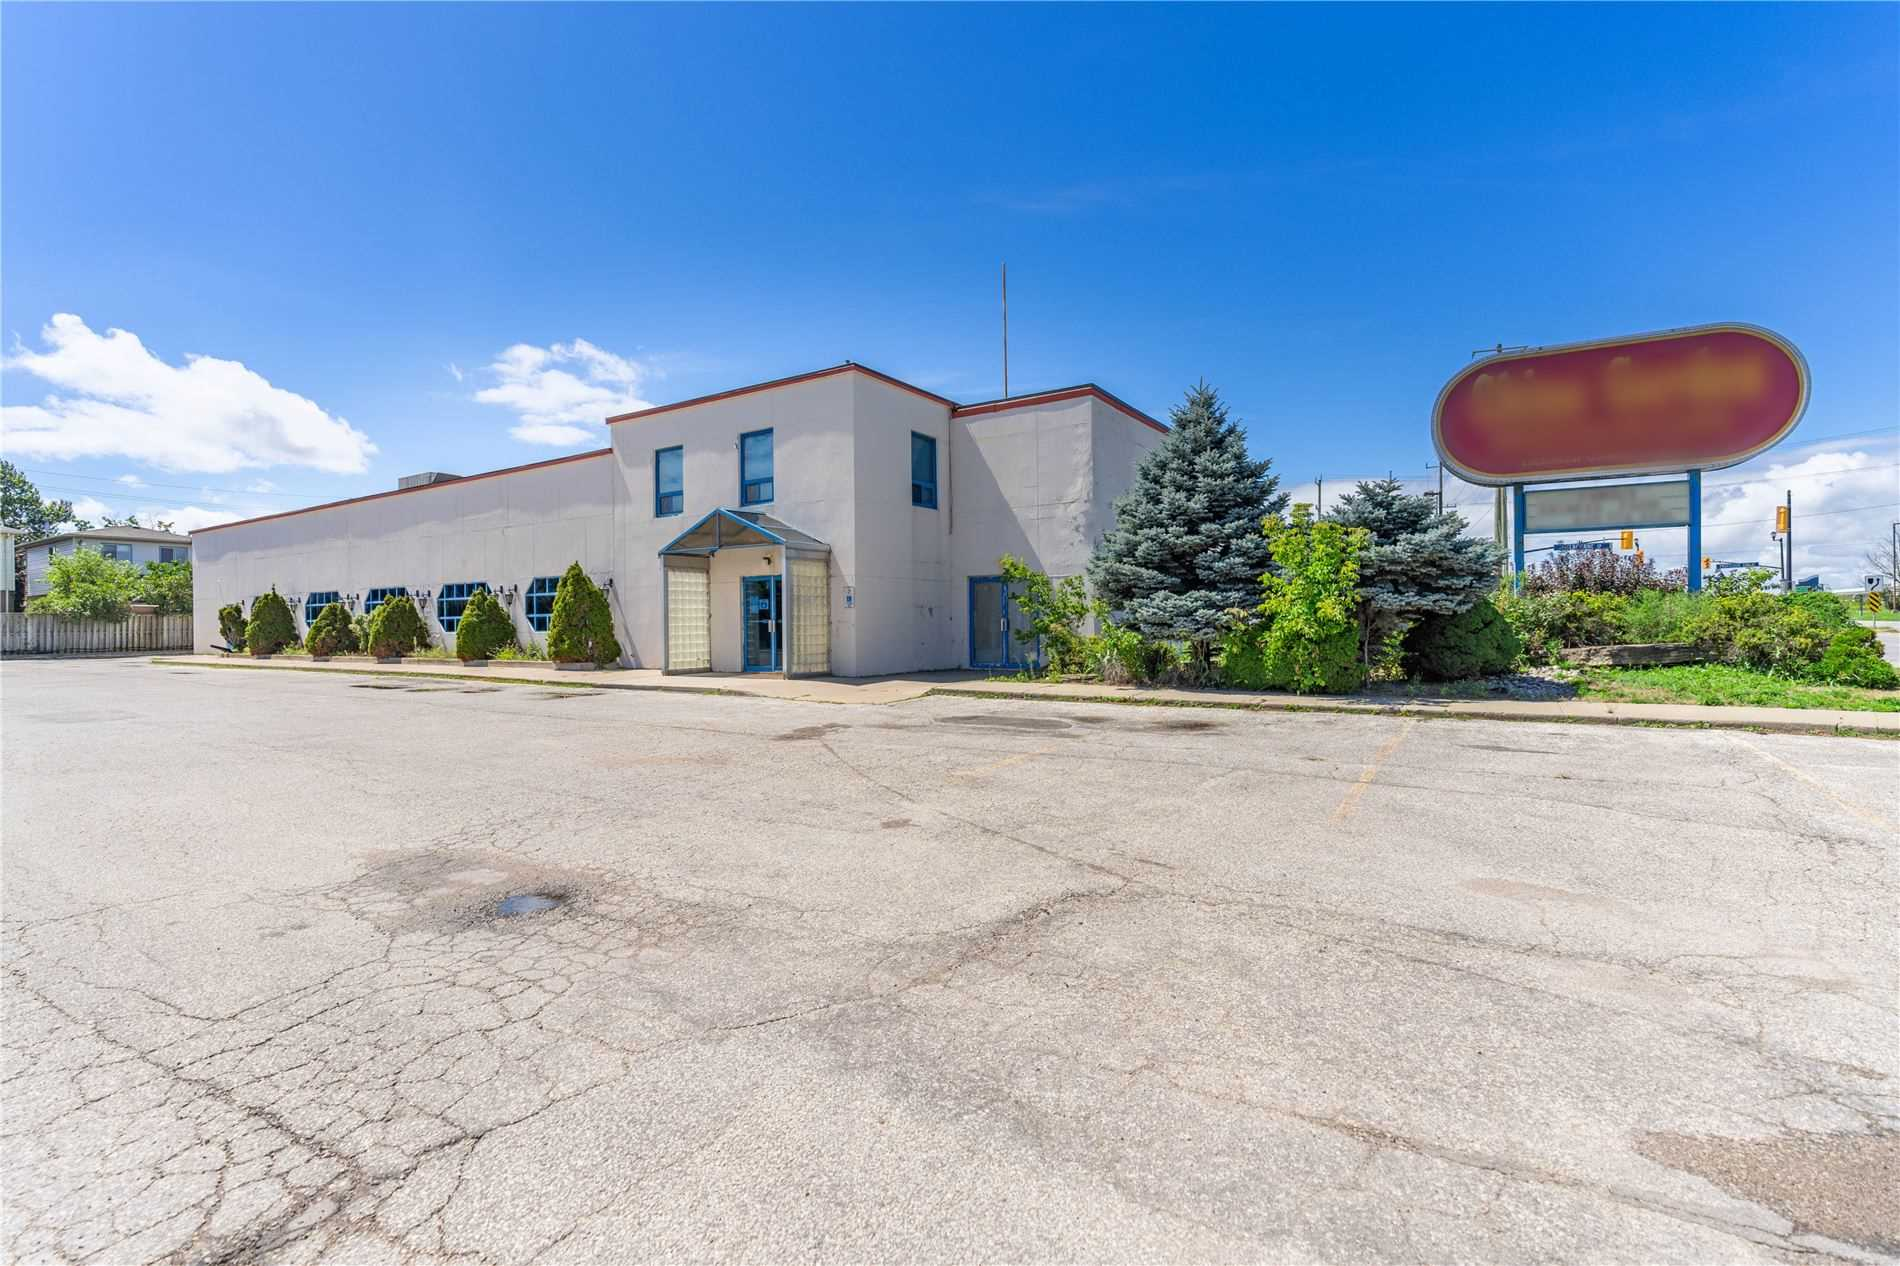 Commercial/retail For Sale In Bradford West Gwillimbury , ,Commercial/retail,For Sale,Holland